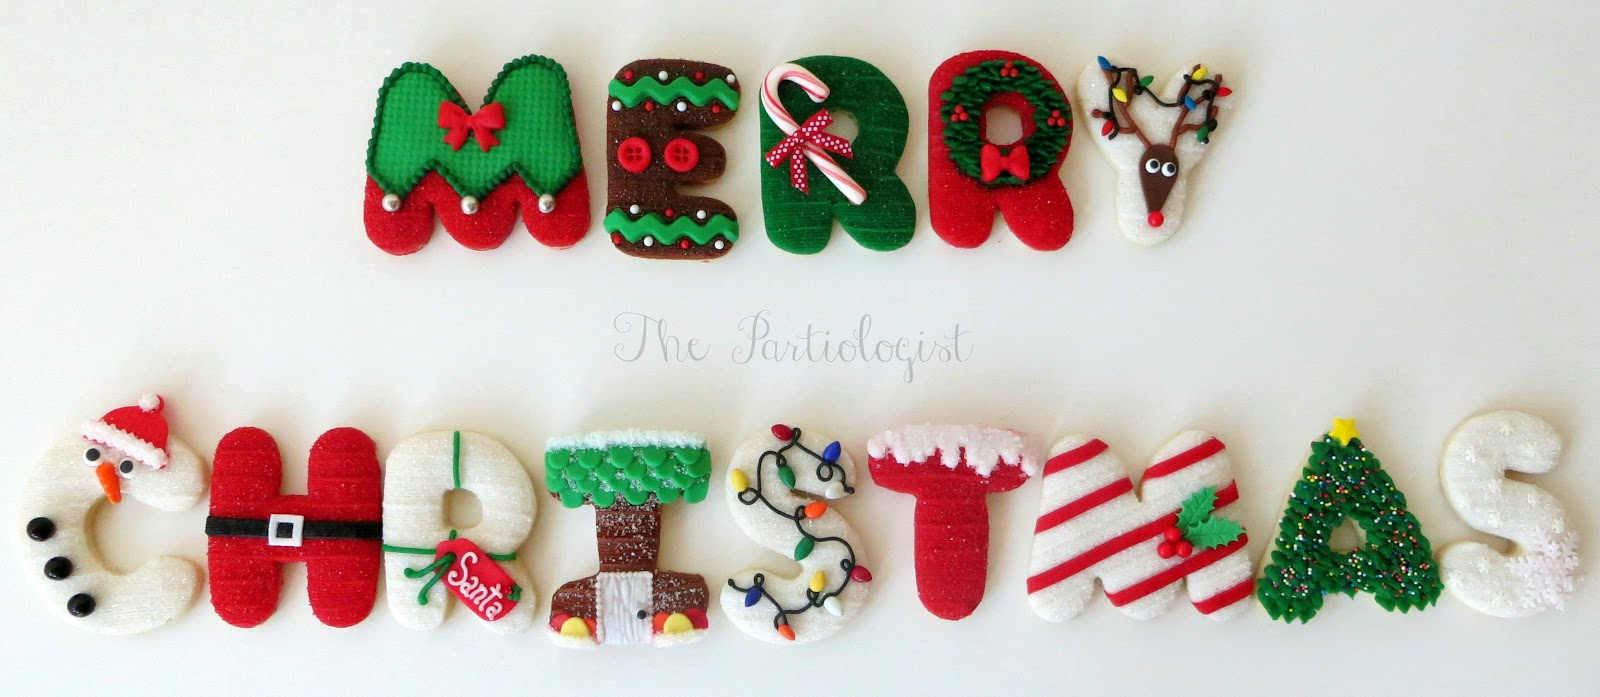 The Partiologist Christmas Cookies